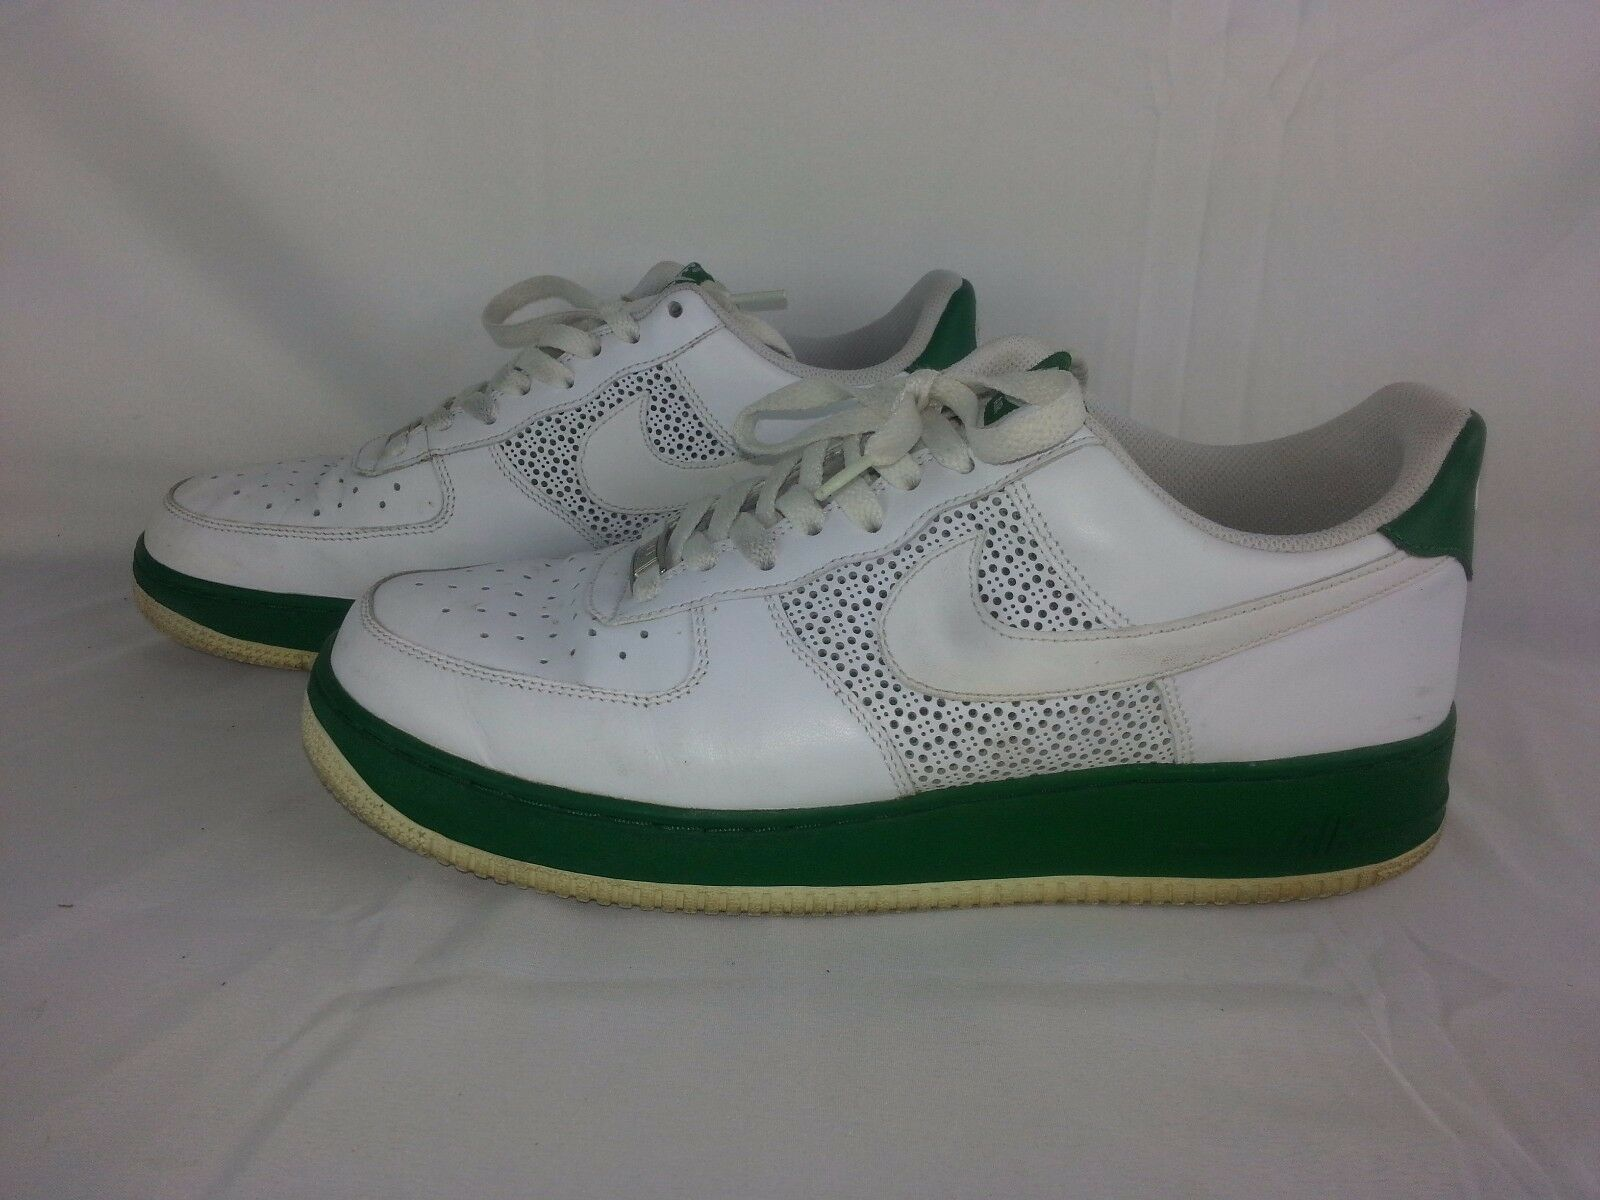 Men's size 10 Nike Air Force 1 1982 Retro sneakers shoes Green & White Cheap women's shoes women's shoes